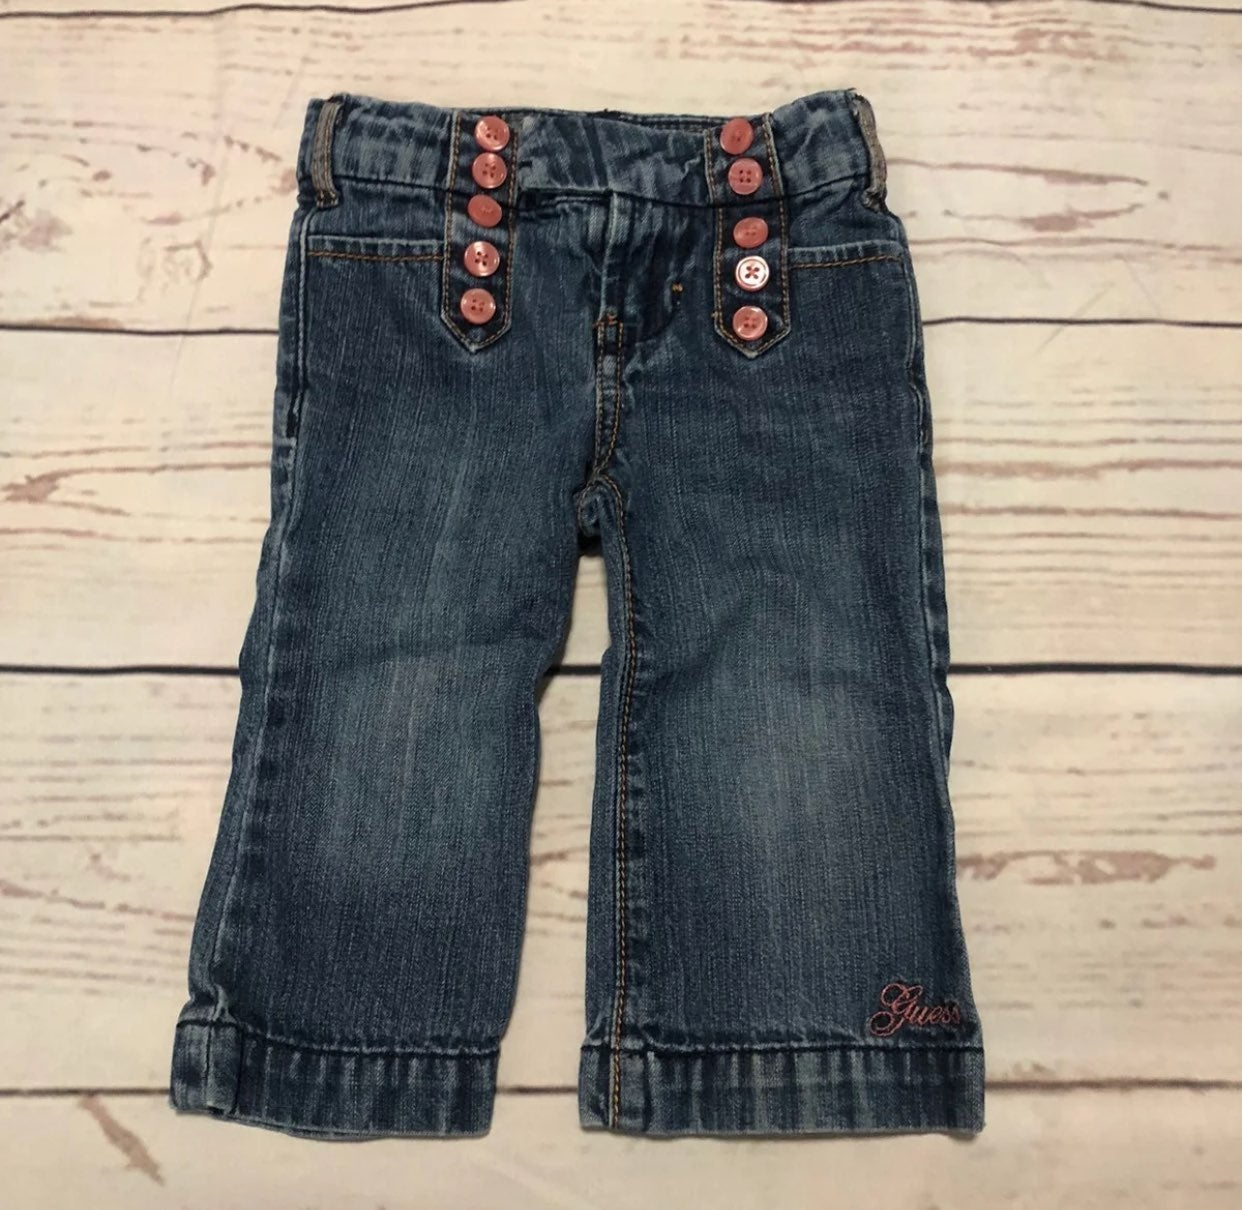 Guess jeans denim girl size 12M